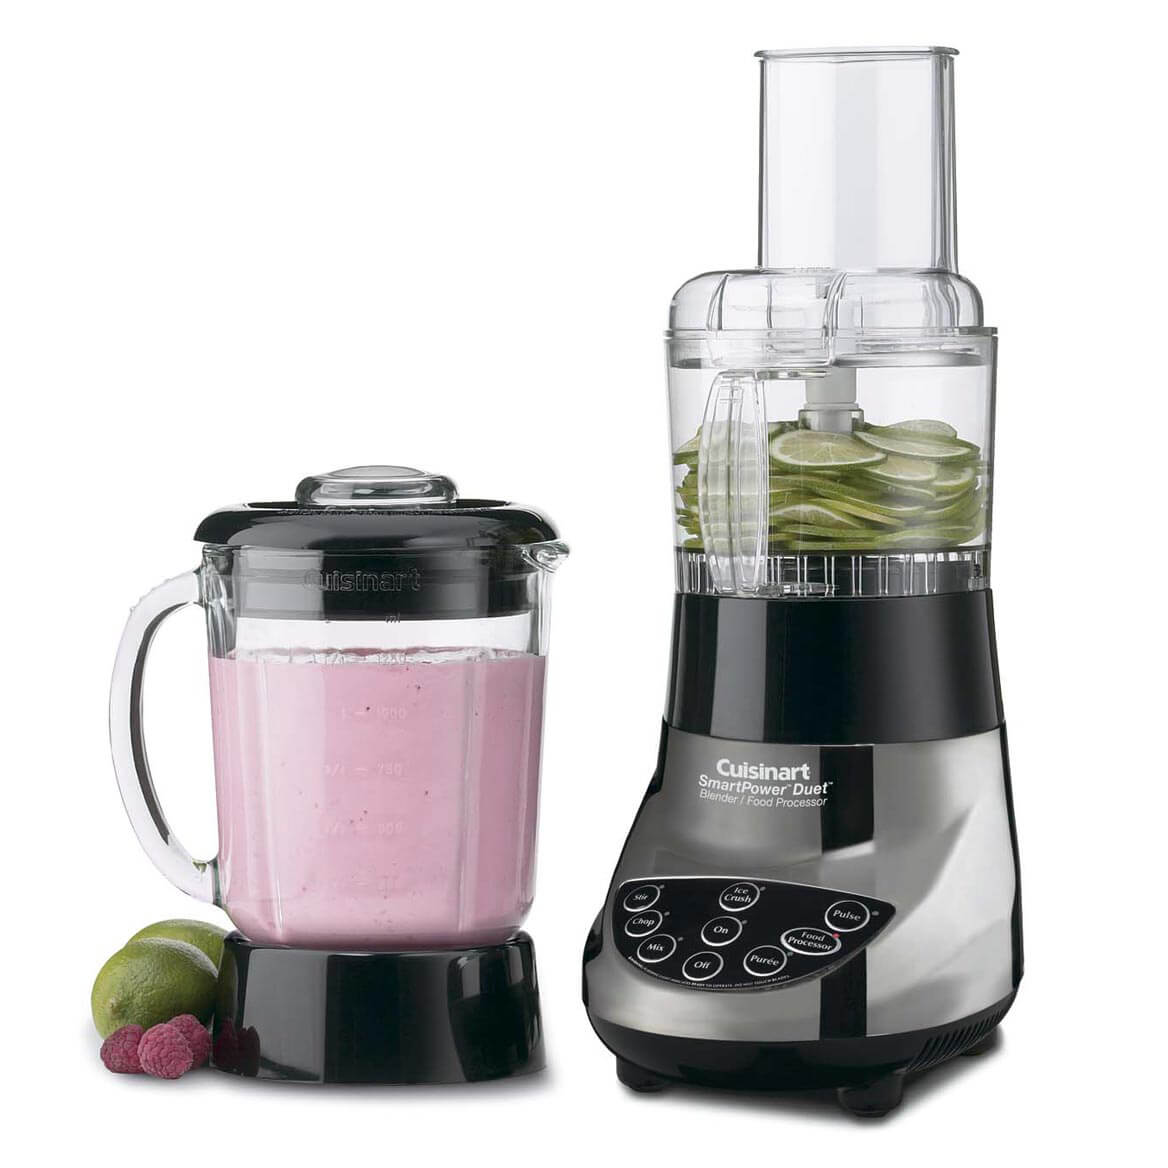 cuisinart smart power duet blender food processor miles kimball. Black Bedroom Furniture Sets. Home Design Ideas